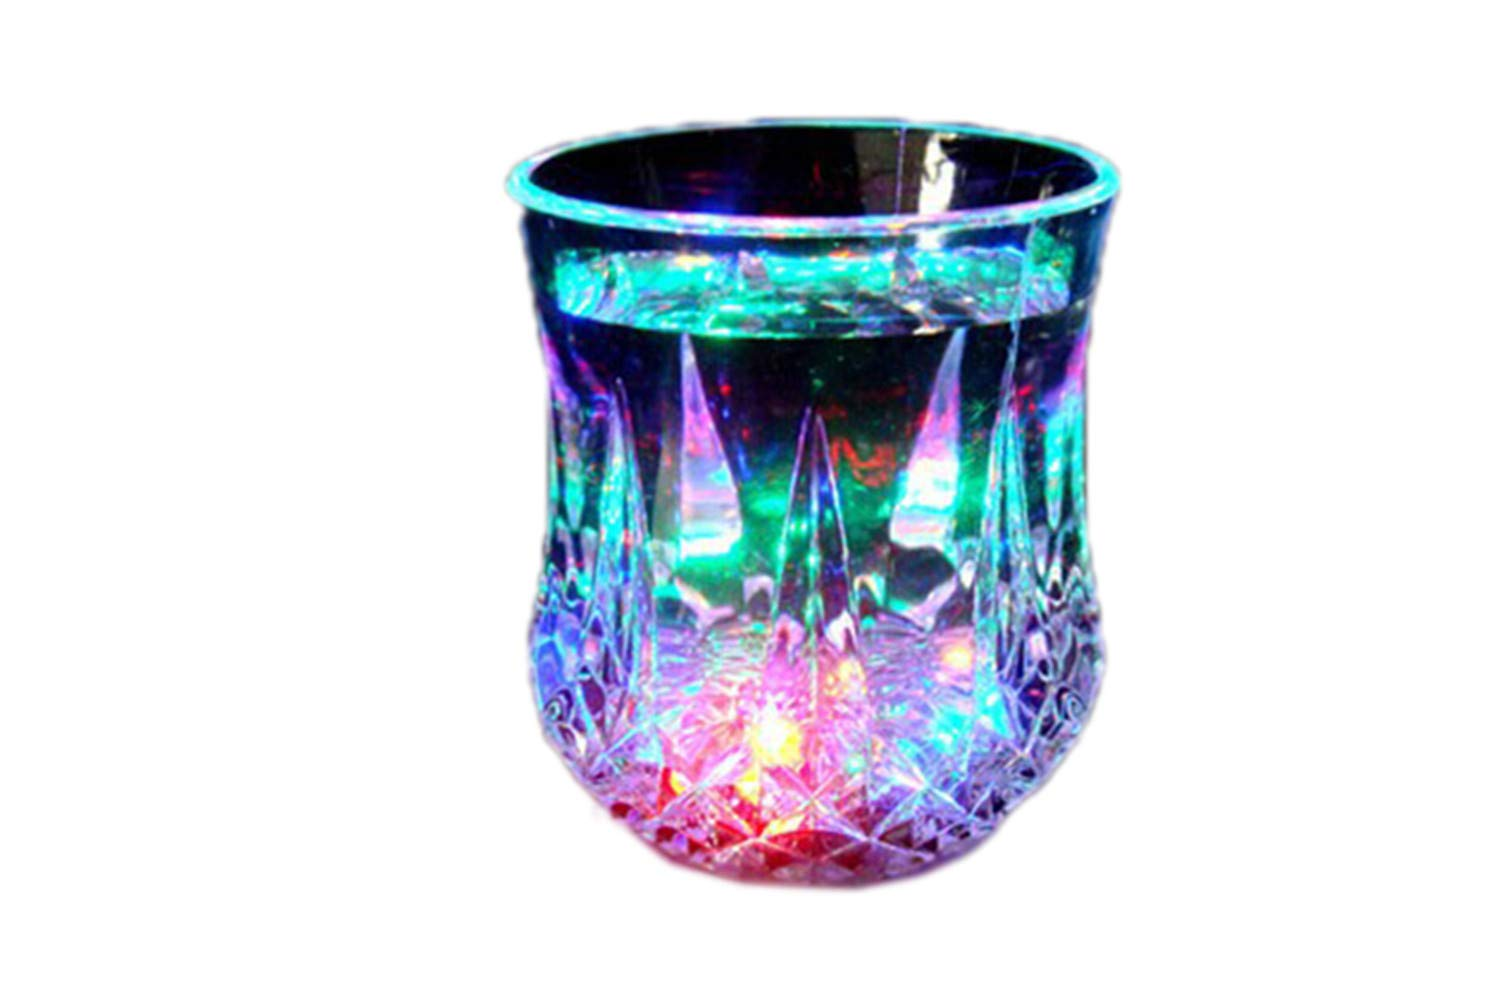 Pouring Water Glare LED Magic Colorful Pineapple Cup Student Gift Creative Party Wine Glass